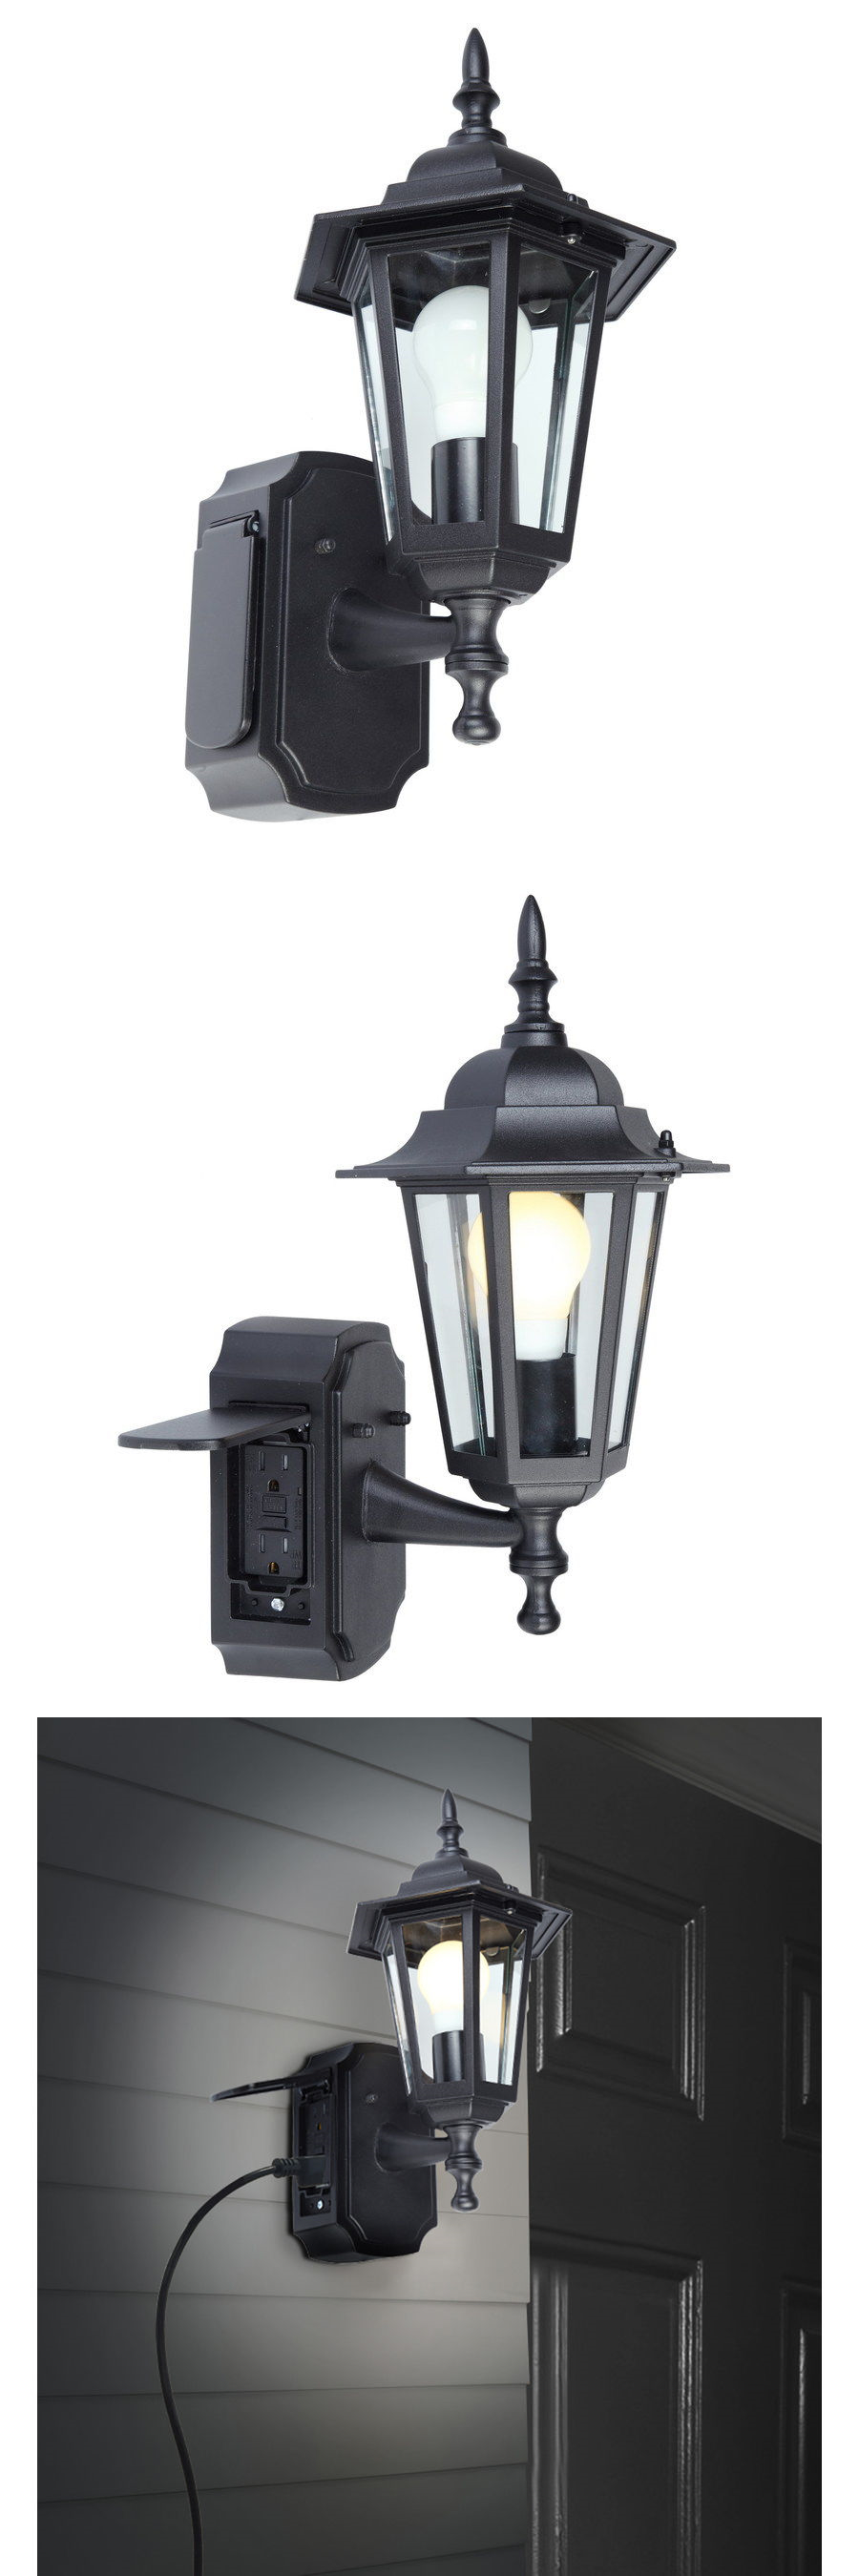 Outdoor Wall And Porch Lights 94939 Outdoor Black Wall Light Fixture Patio Porch Exterior Sconce Lantern Black Wall Lights Porch Lighting Wall Light Fixtures